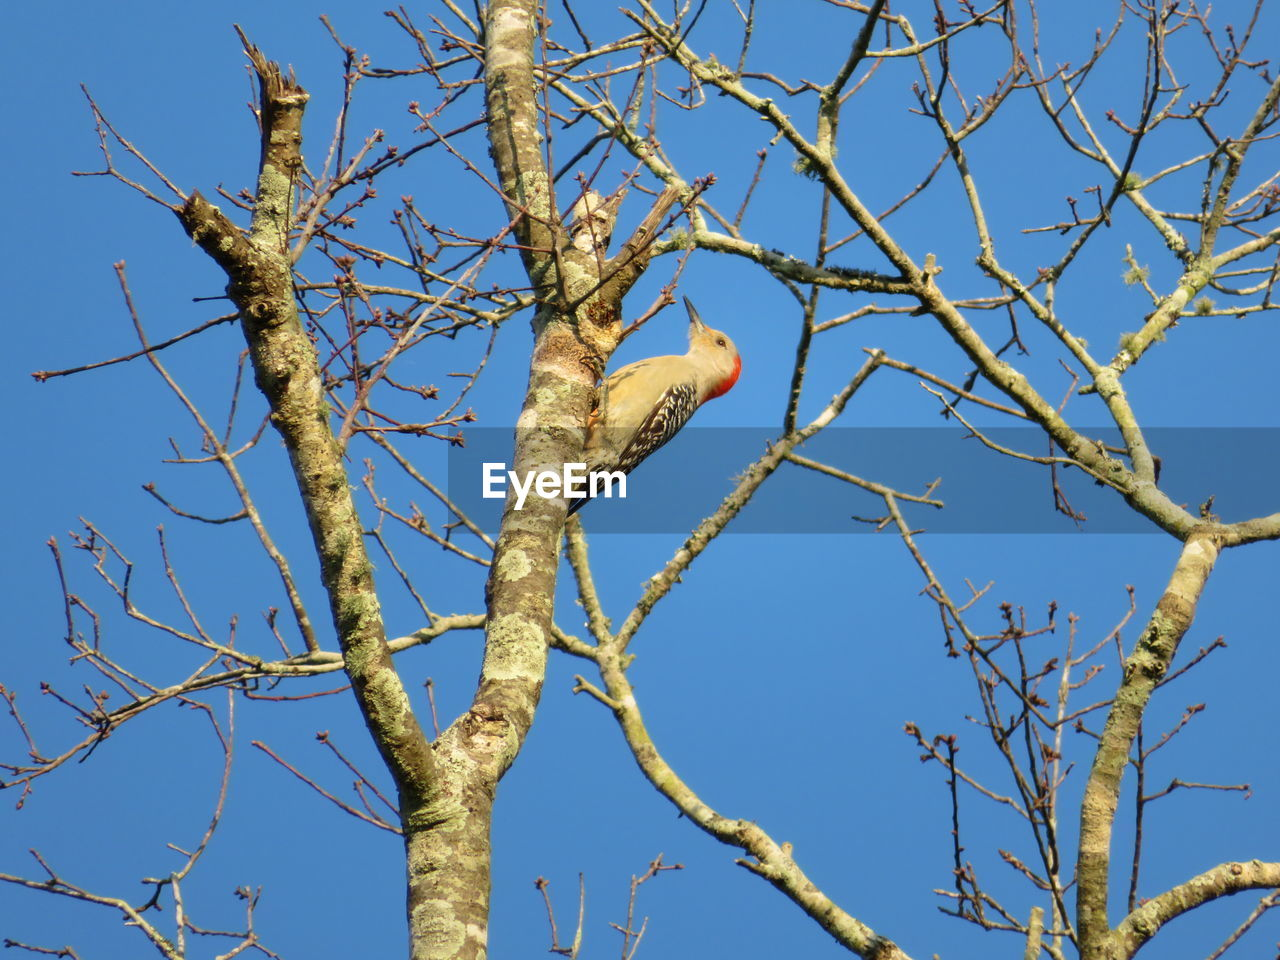 tree, branch, plant, low angle view, bare tree, sky, no people, day, nature, animal wildlife, blue, clear sky, animals in the wild, animal, bird, animal themes, vertebrate, one animal, sunlight, outdoors